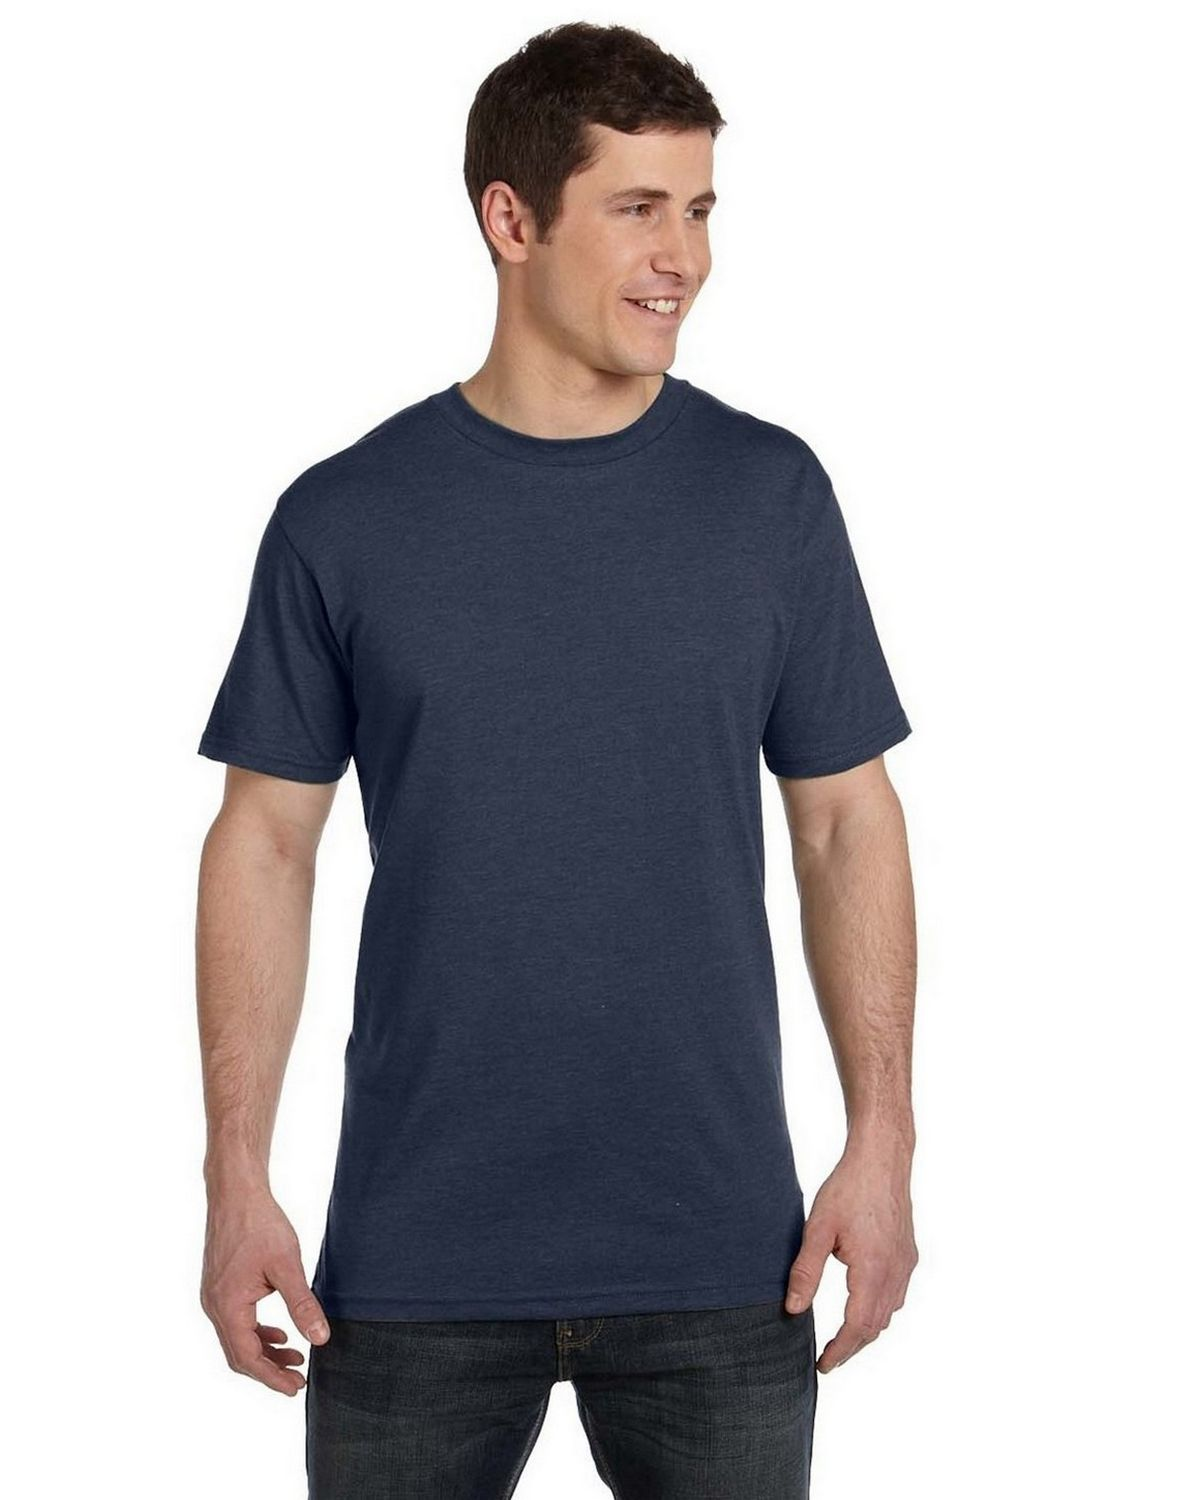 Econscious EC1080 Mens Blended Eco T Shirt - Water - L EC1080